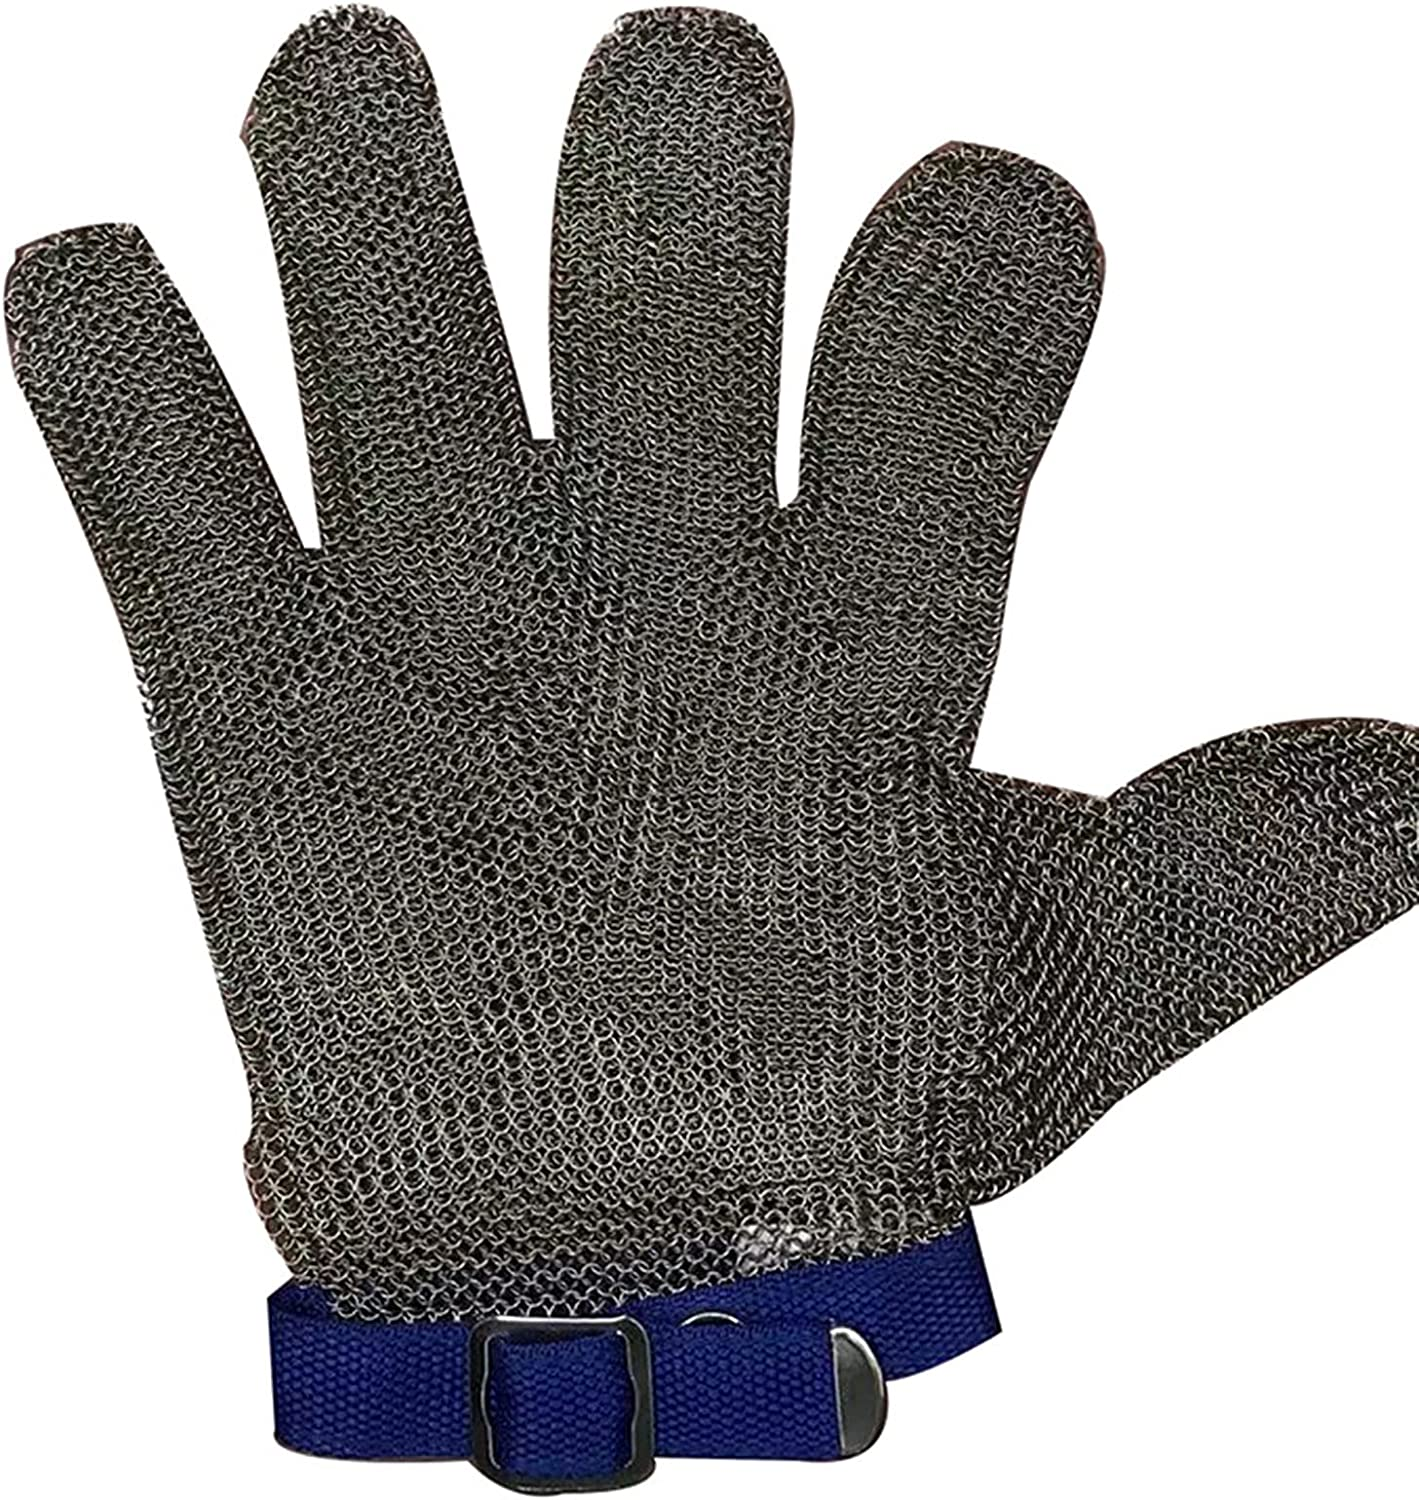 Steel Wire Max Fashionable 47% OFF Gloves Anti-Cut Stainless 1pc